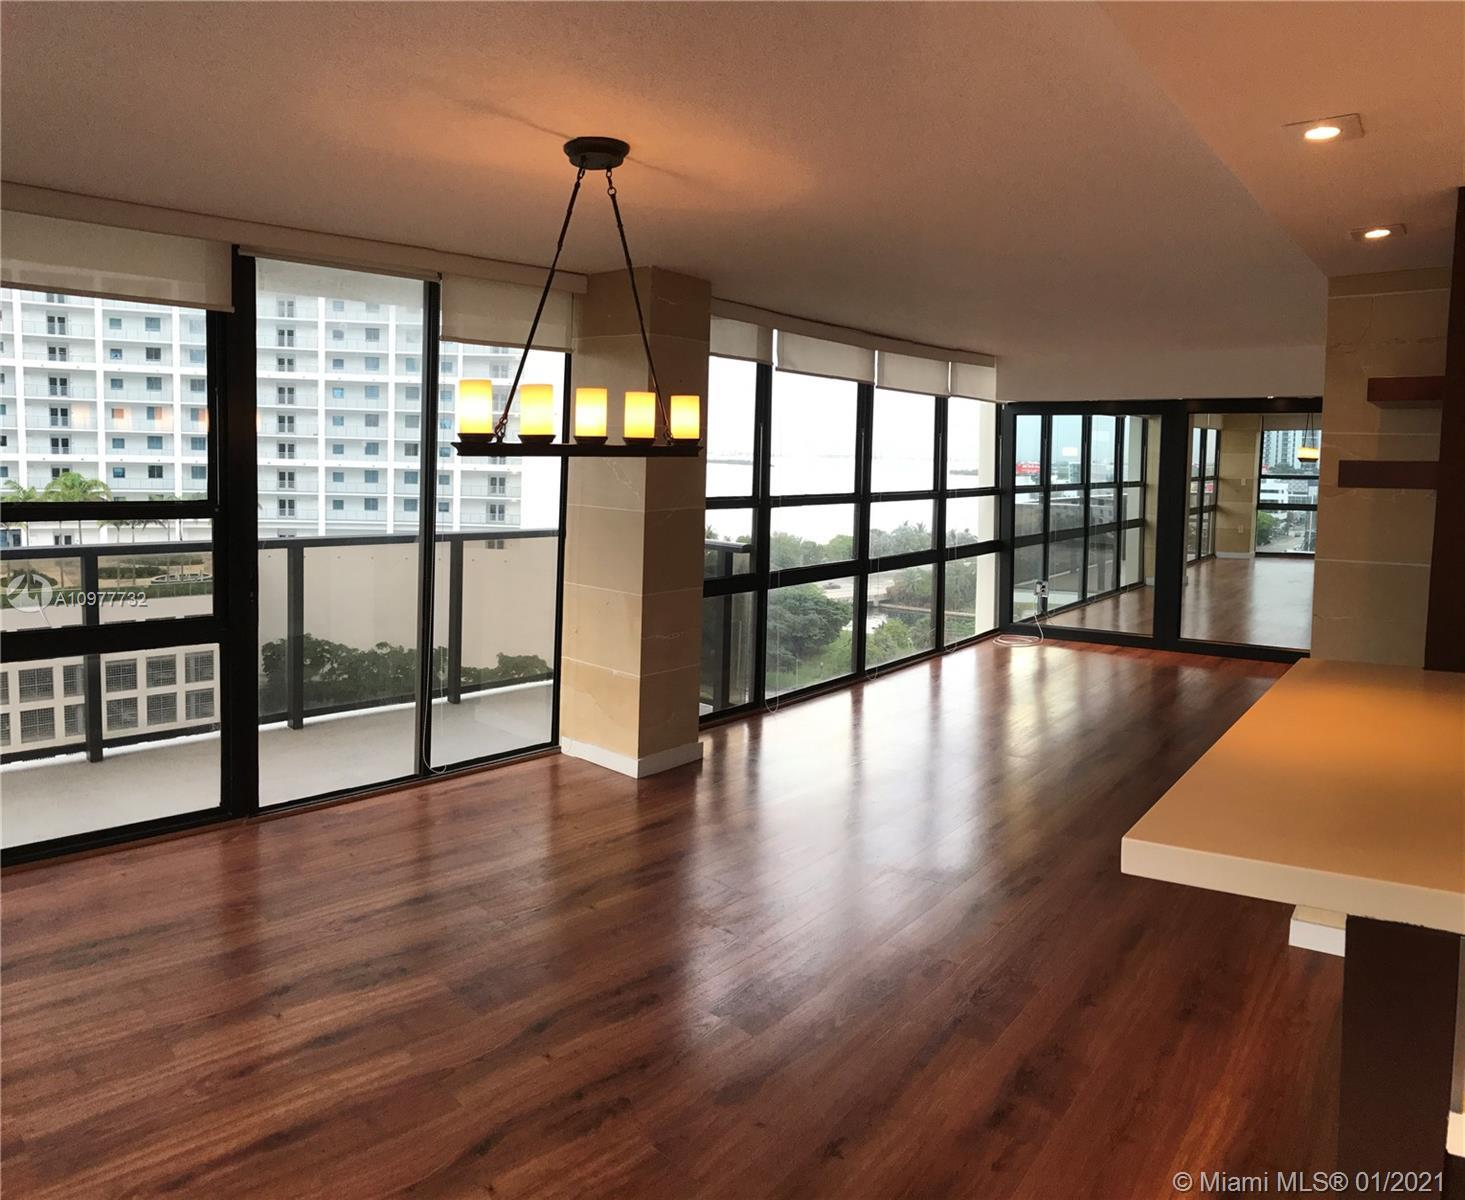 Spectacular 1BR/2BA unit in Charter Club. Centrally located in Edgewater, close to Midtown, Design D